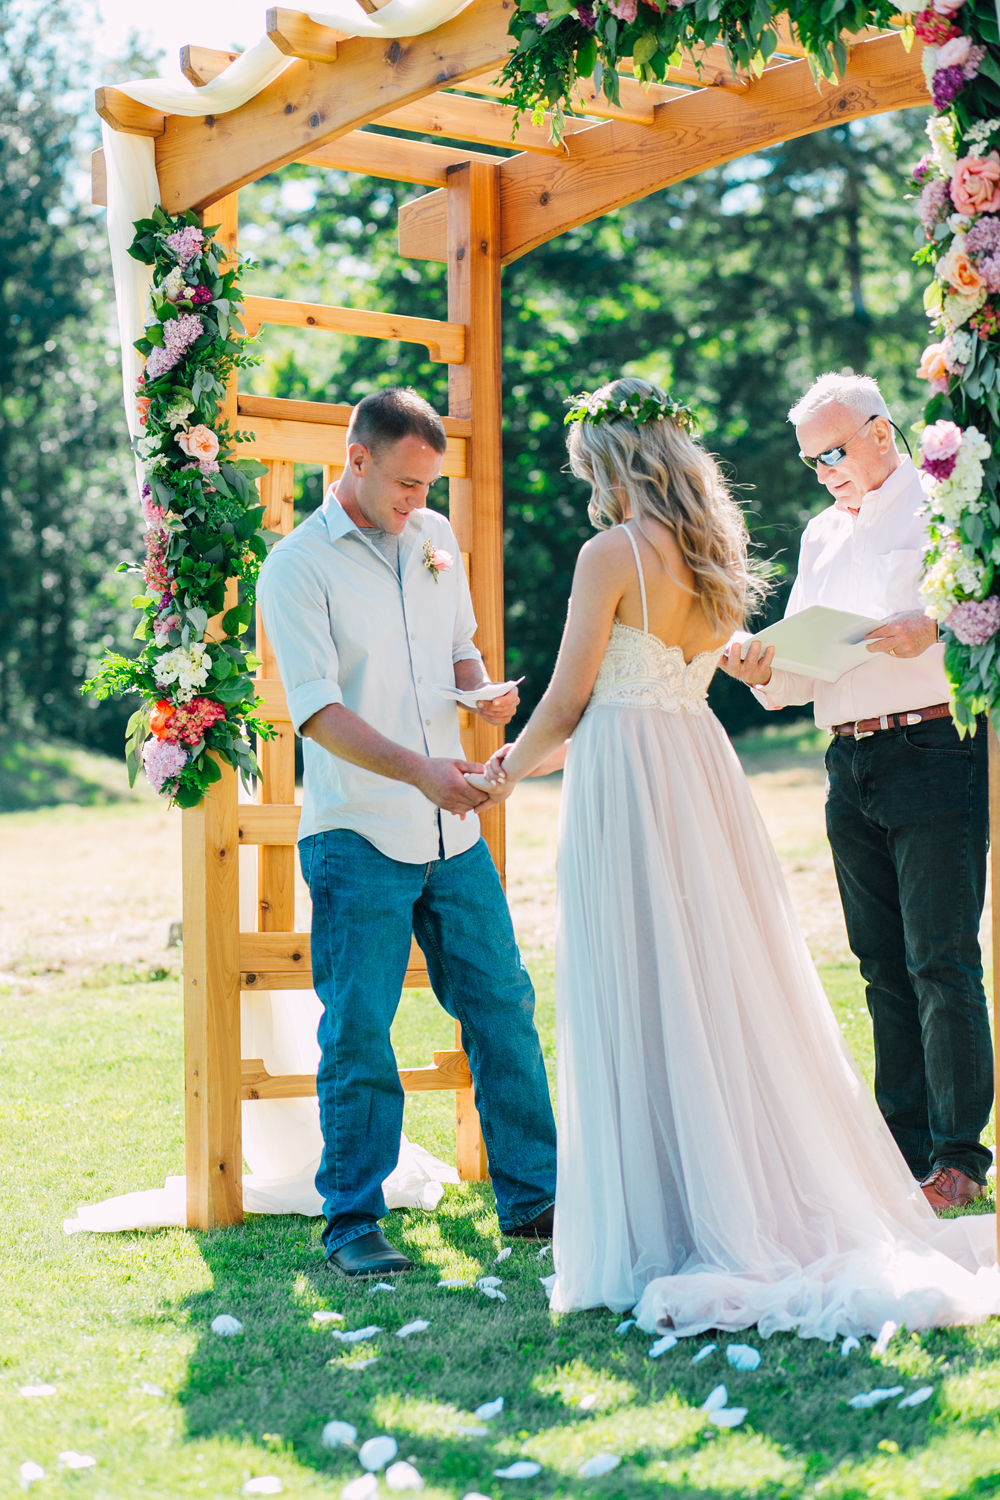 049-bellingham-wedding-photographer-katheryn-moran-backyard-wedding-ashley-kevin-2017.jpg